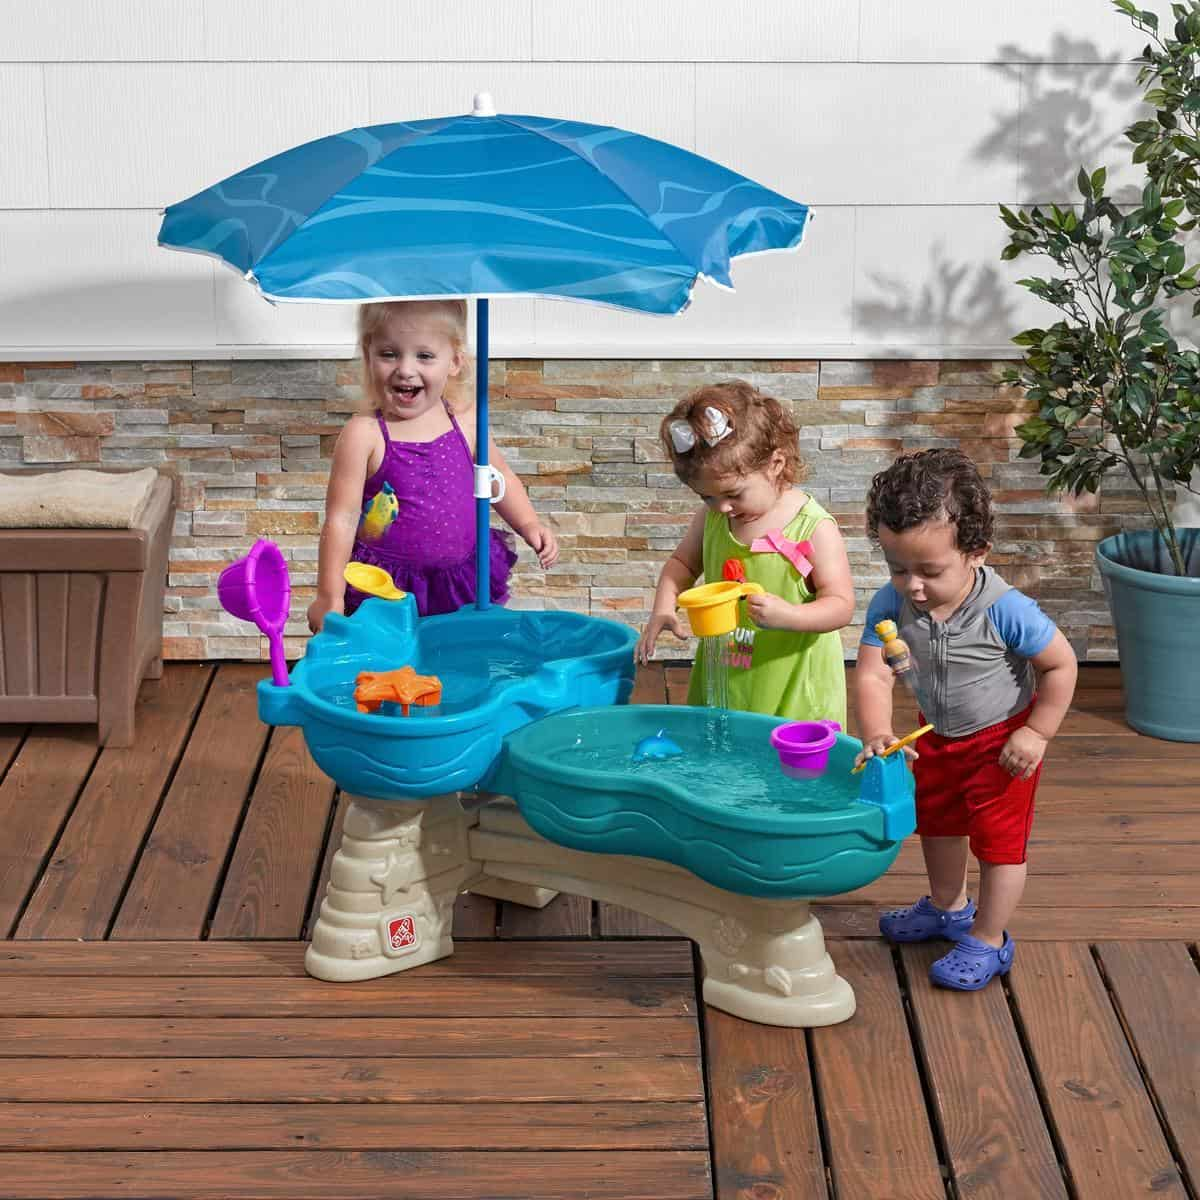 Kids playing spill and splash seaway water table.